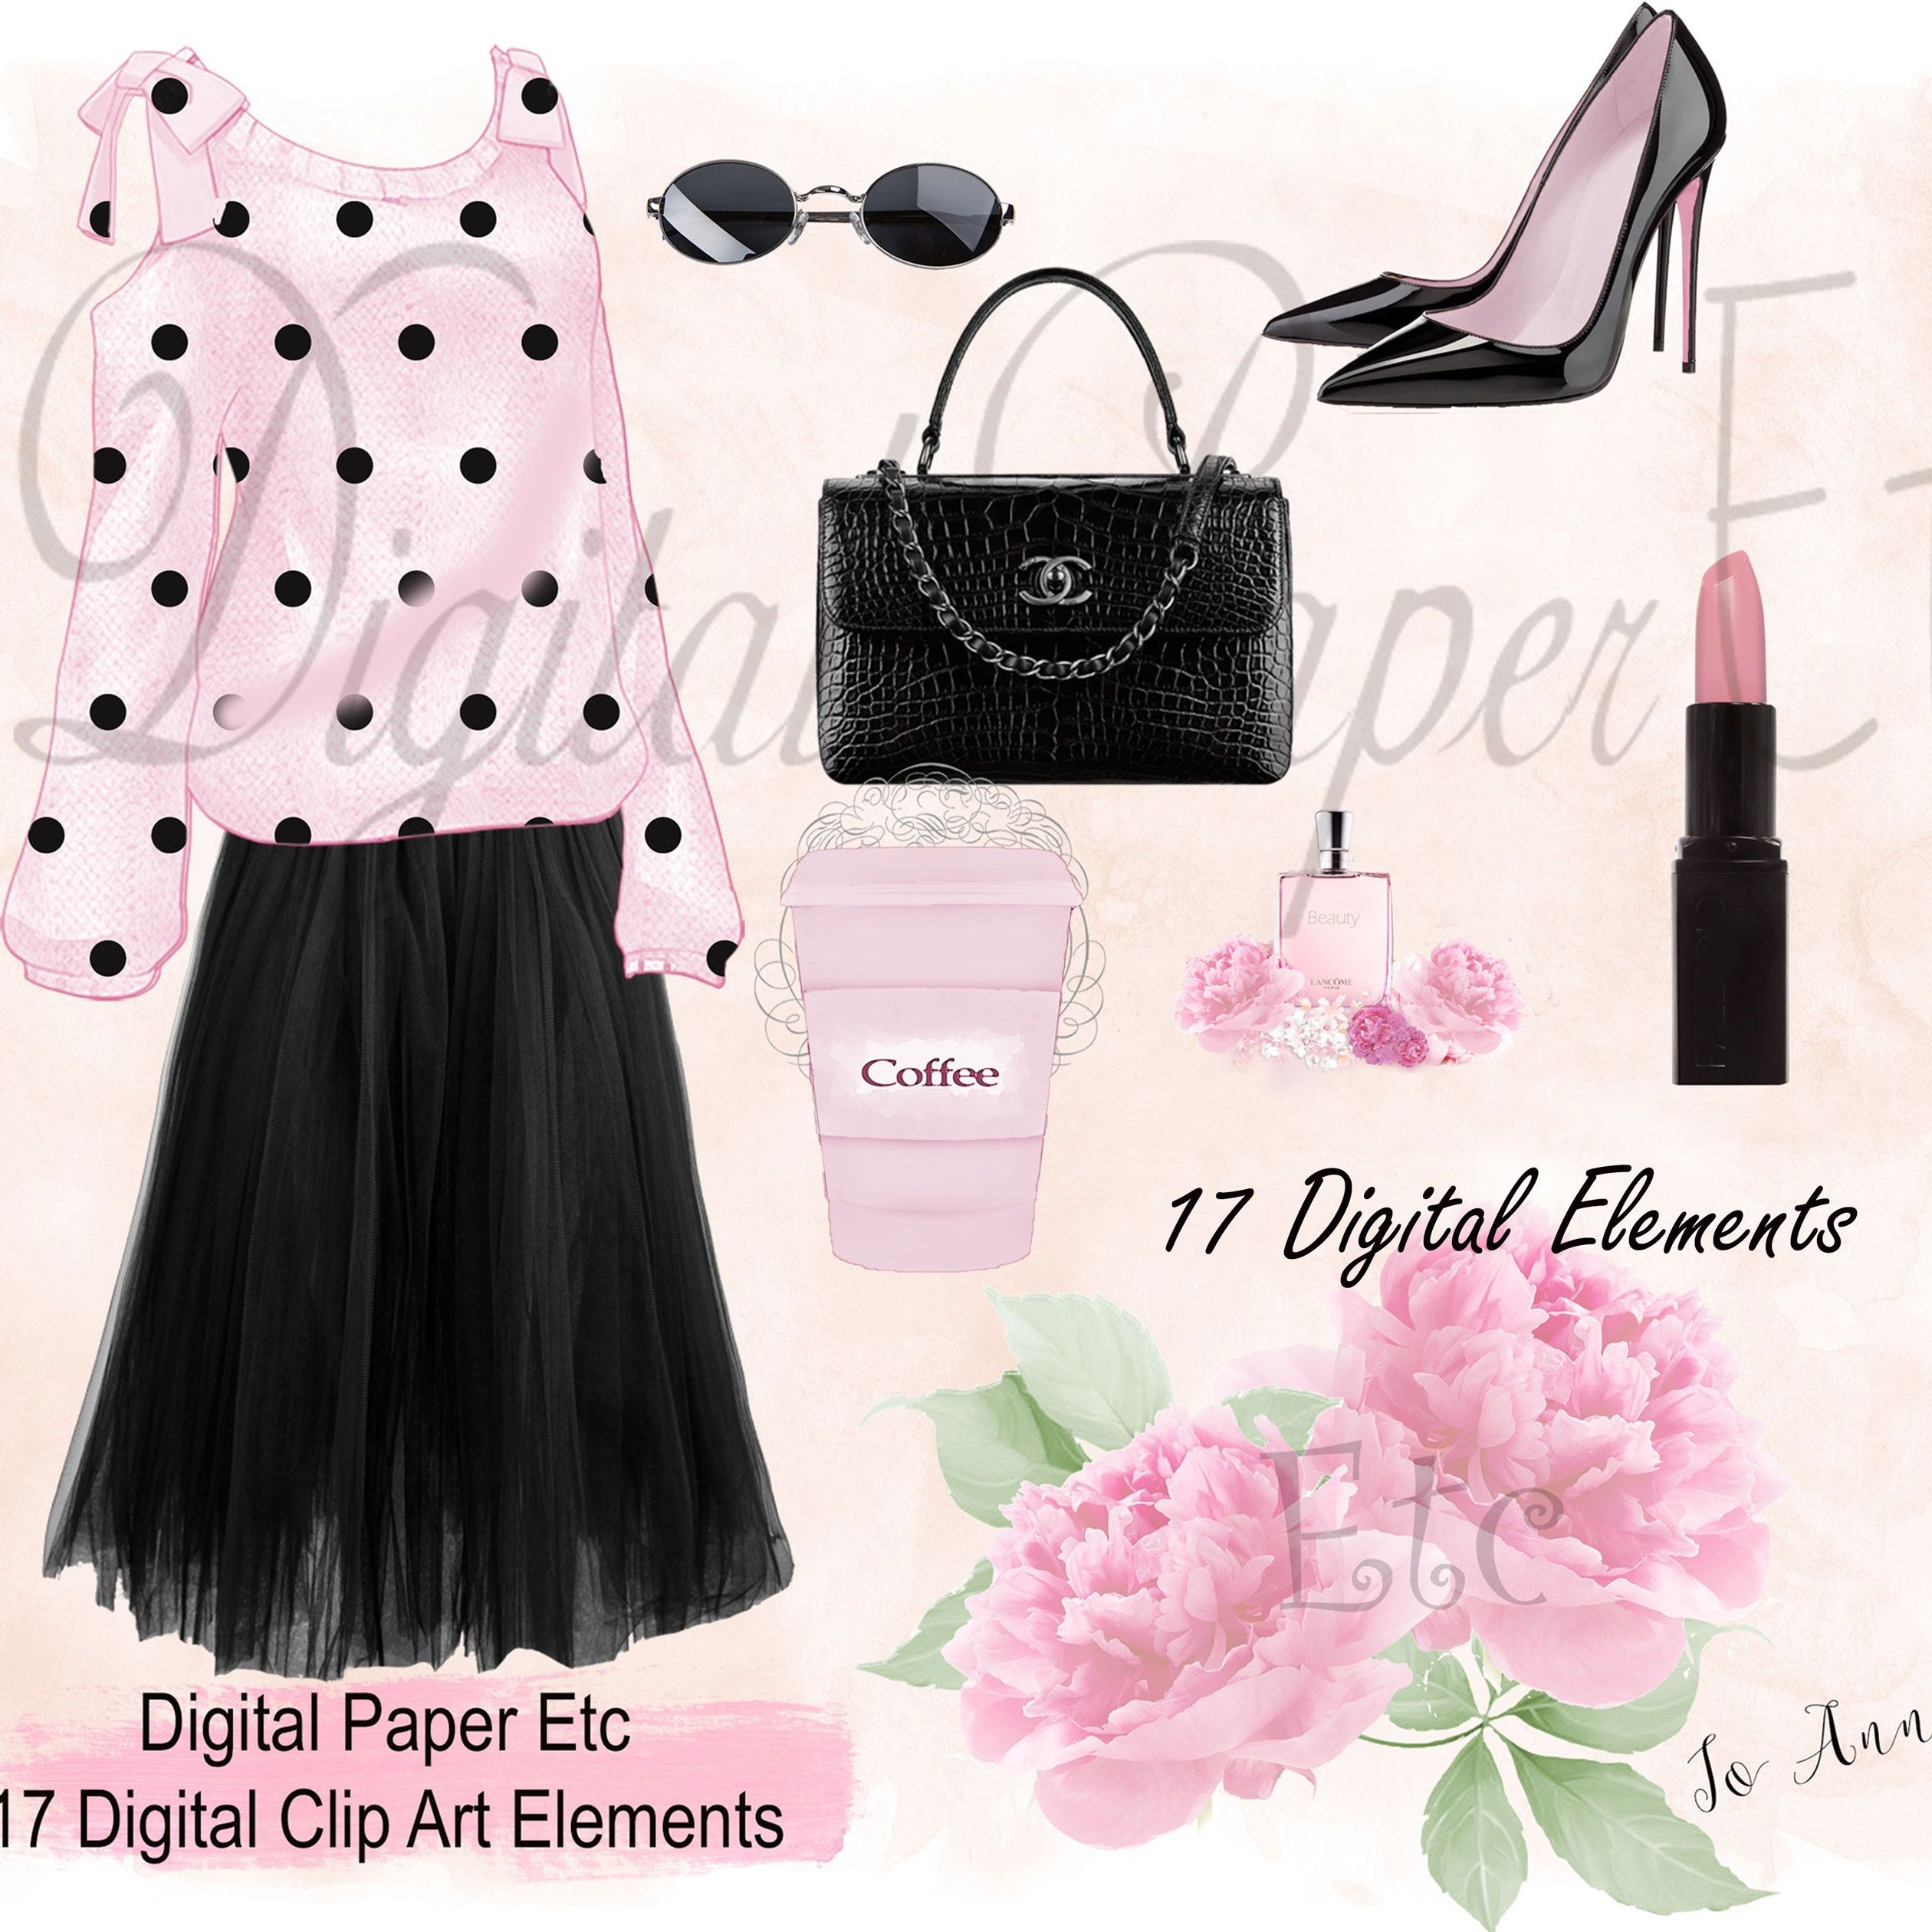 Digital Fashion Clip Art Blouse Skirt High Heel Shoes Perfume Floral Paste Pink Black Clip Art Coffee Cup Ribbon L Fashion Clipart Clip Art Fashion